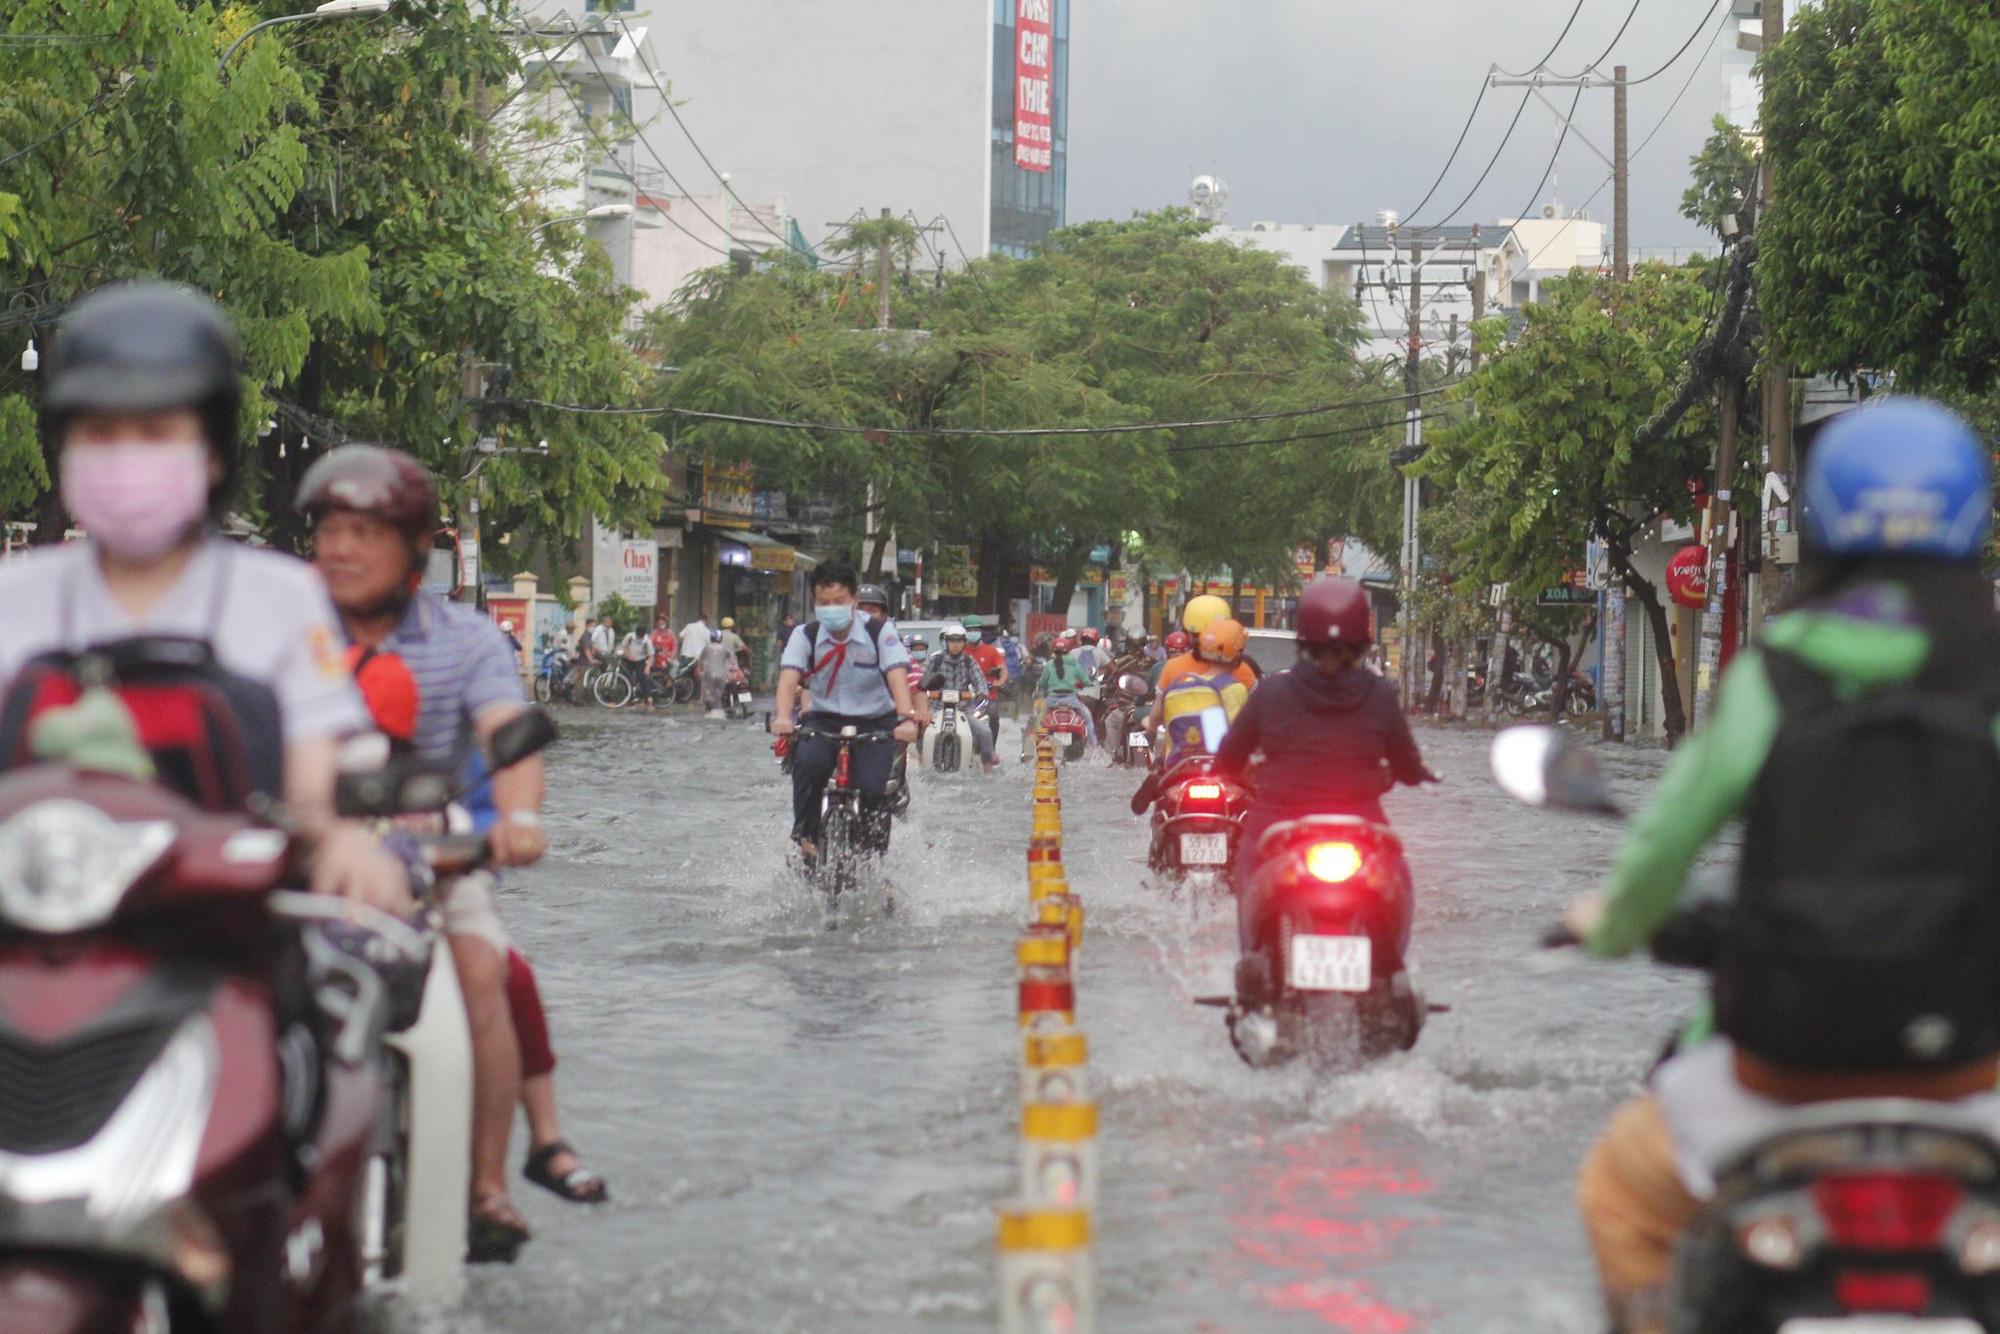 Commuters travel on flooded Nguyen Van Khoi Street in Go Vap District, Ho Chi Minh City, April 16, 2021. Photo: Chau Tuan / Tuoi Tre